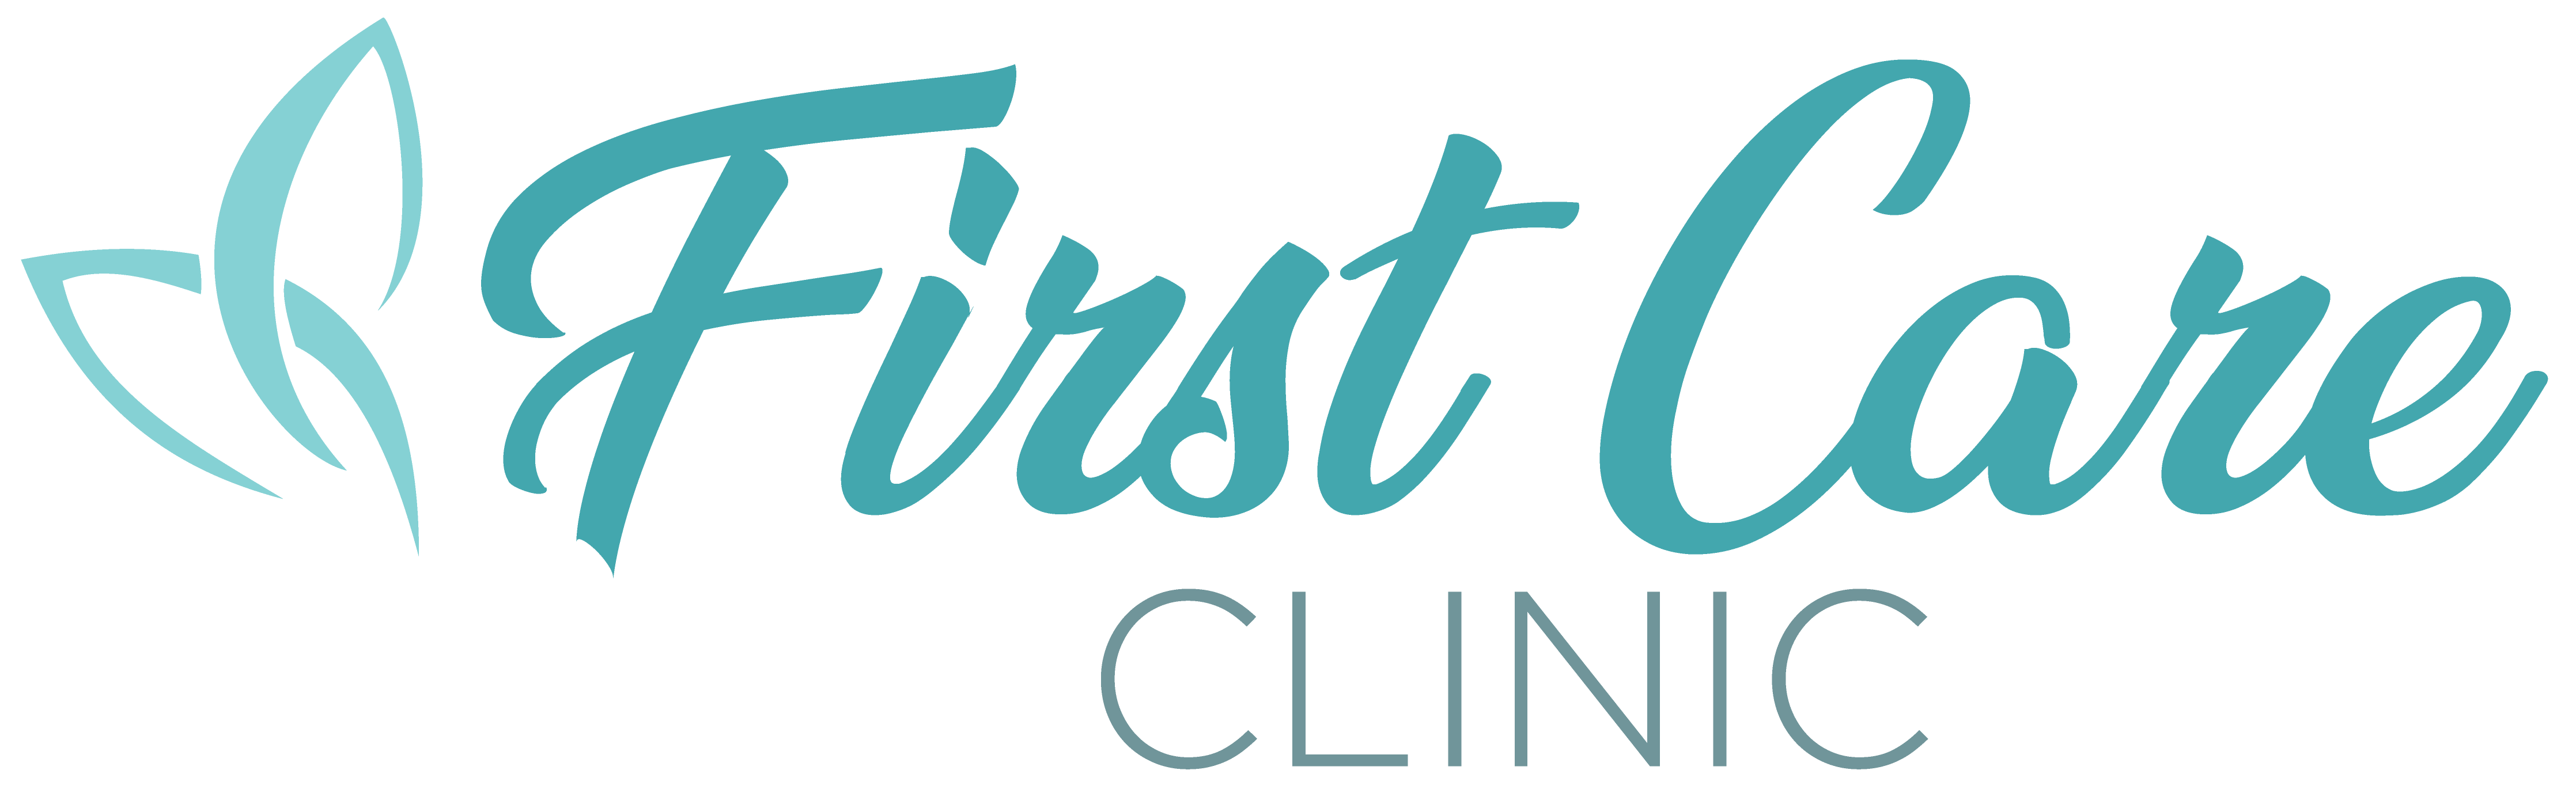 Parenting Education First Care Clinic Madison Wi